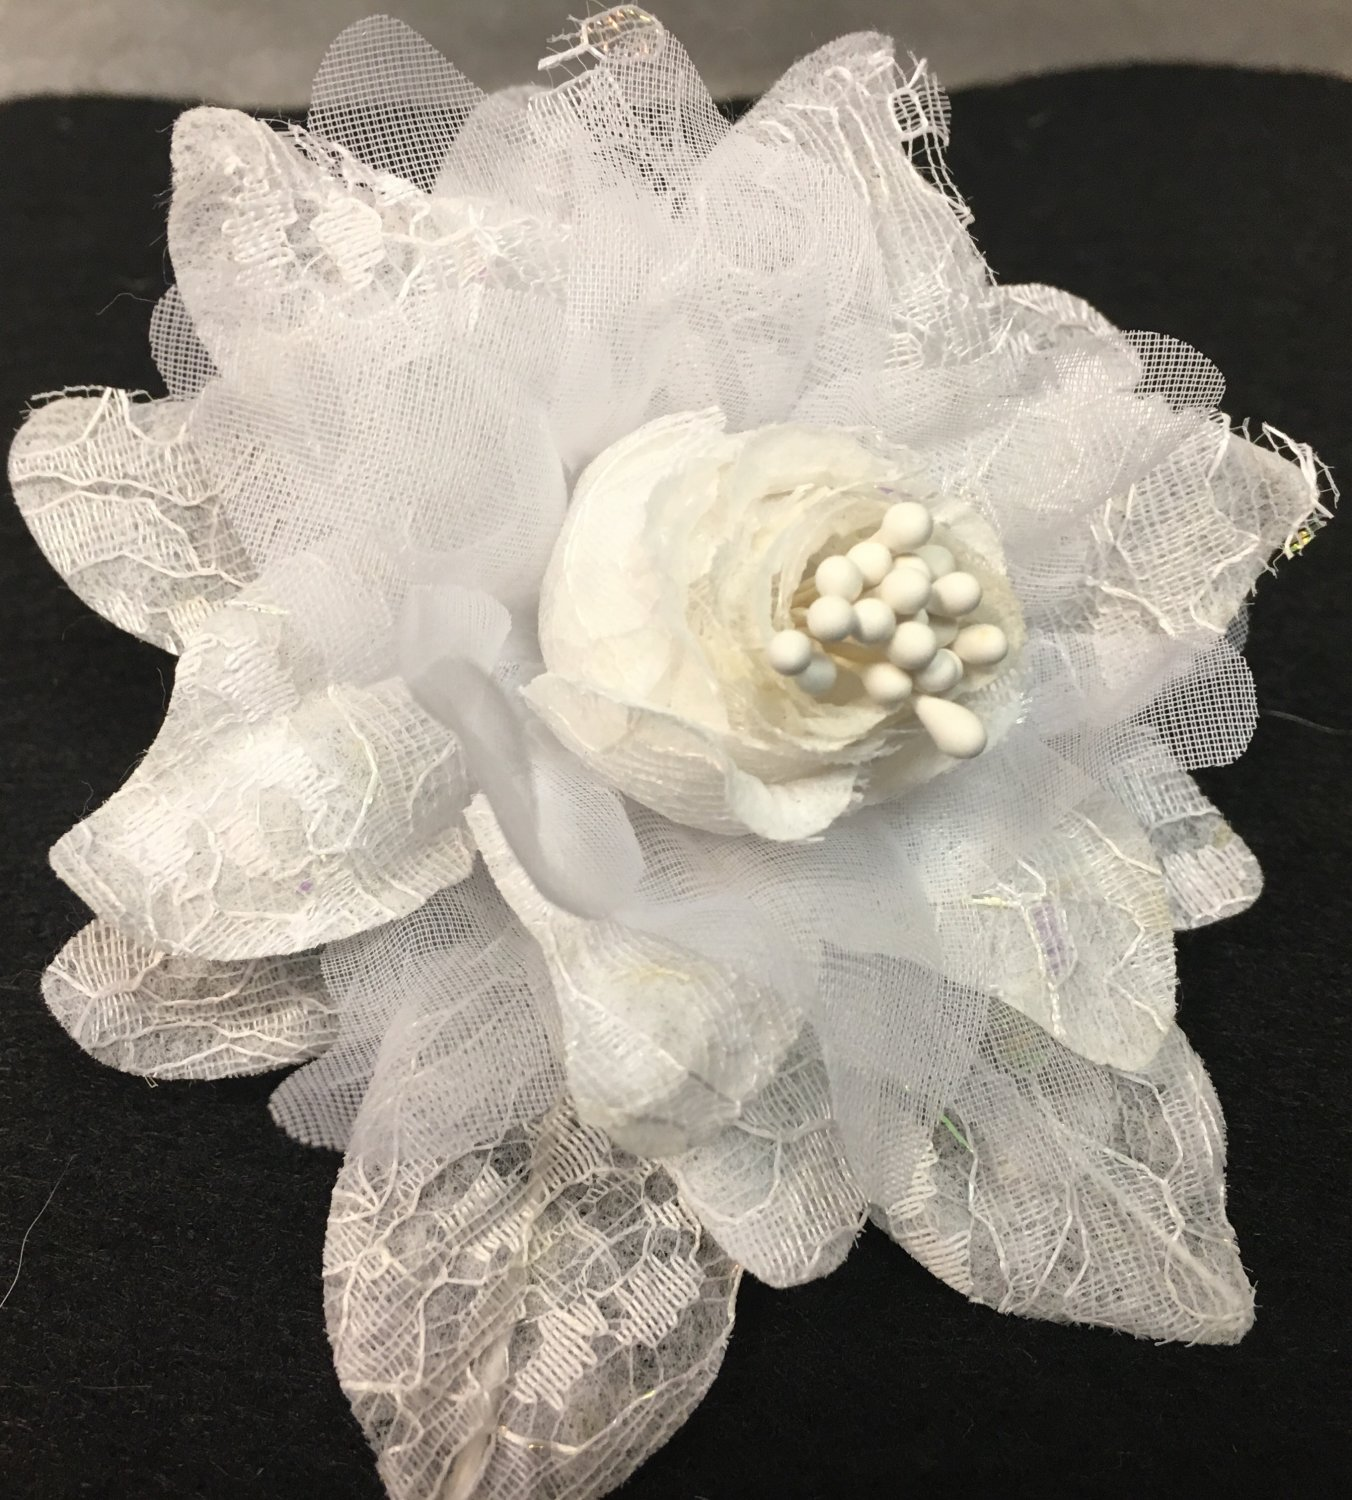 Beautiful White Silk Flowers with Pearls and Lace Accents - 1 Dozen Flowers - 12 Flowers